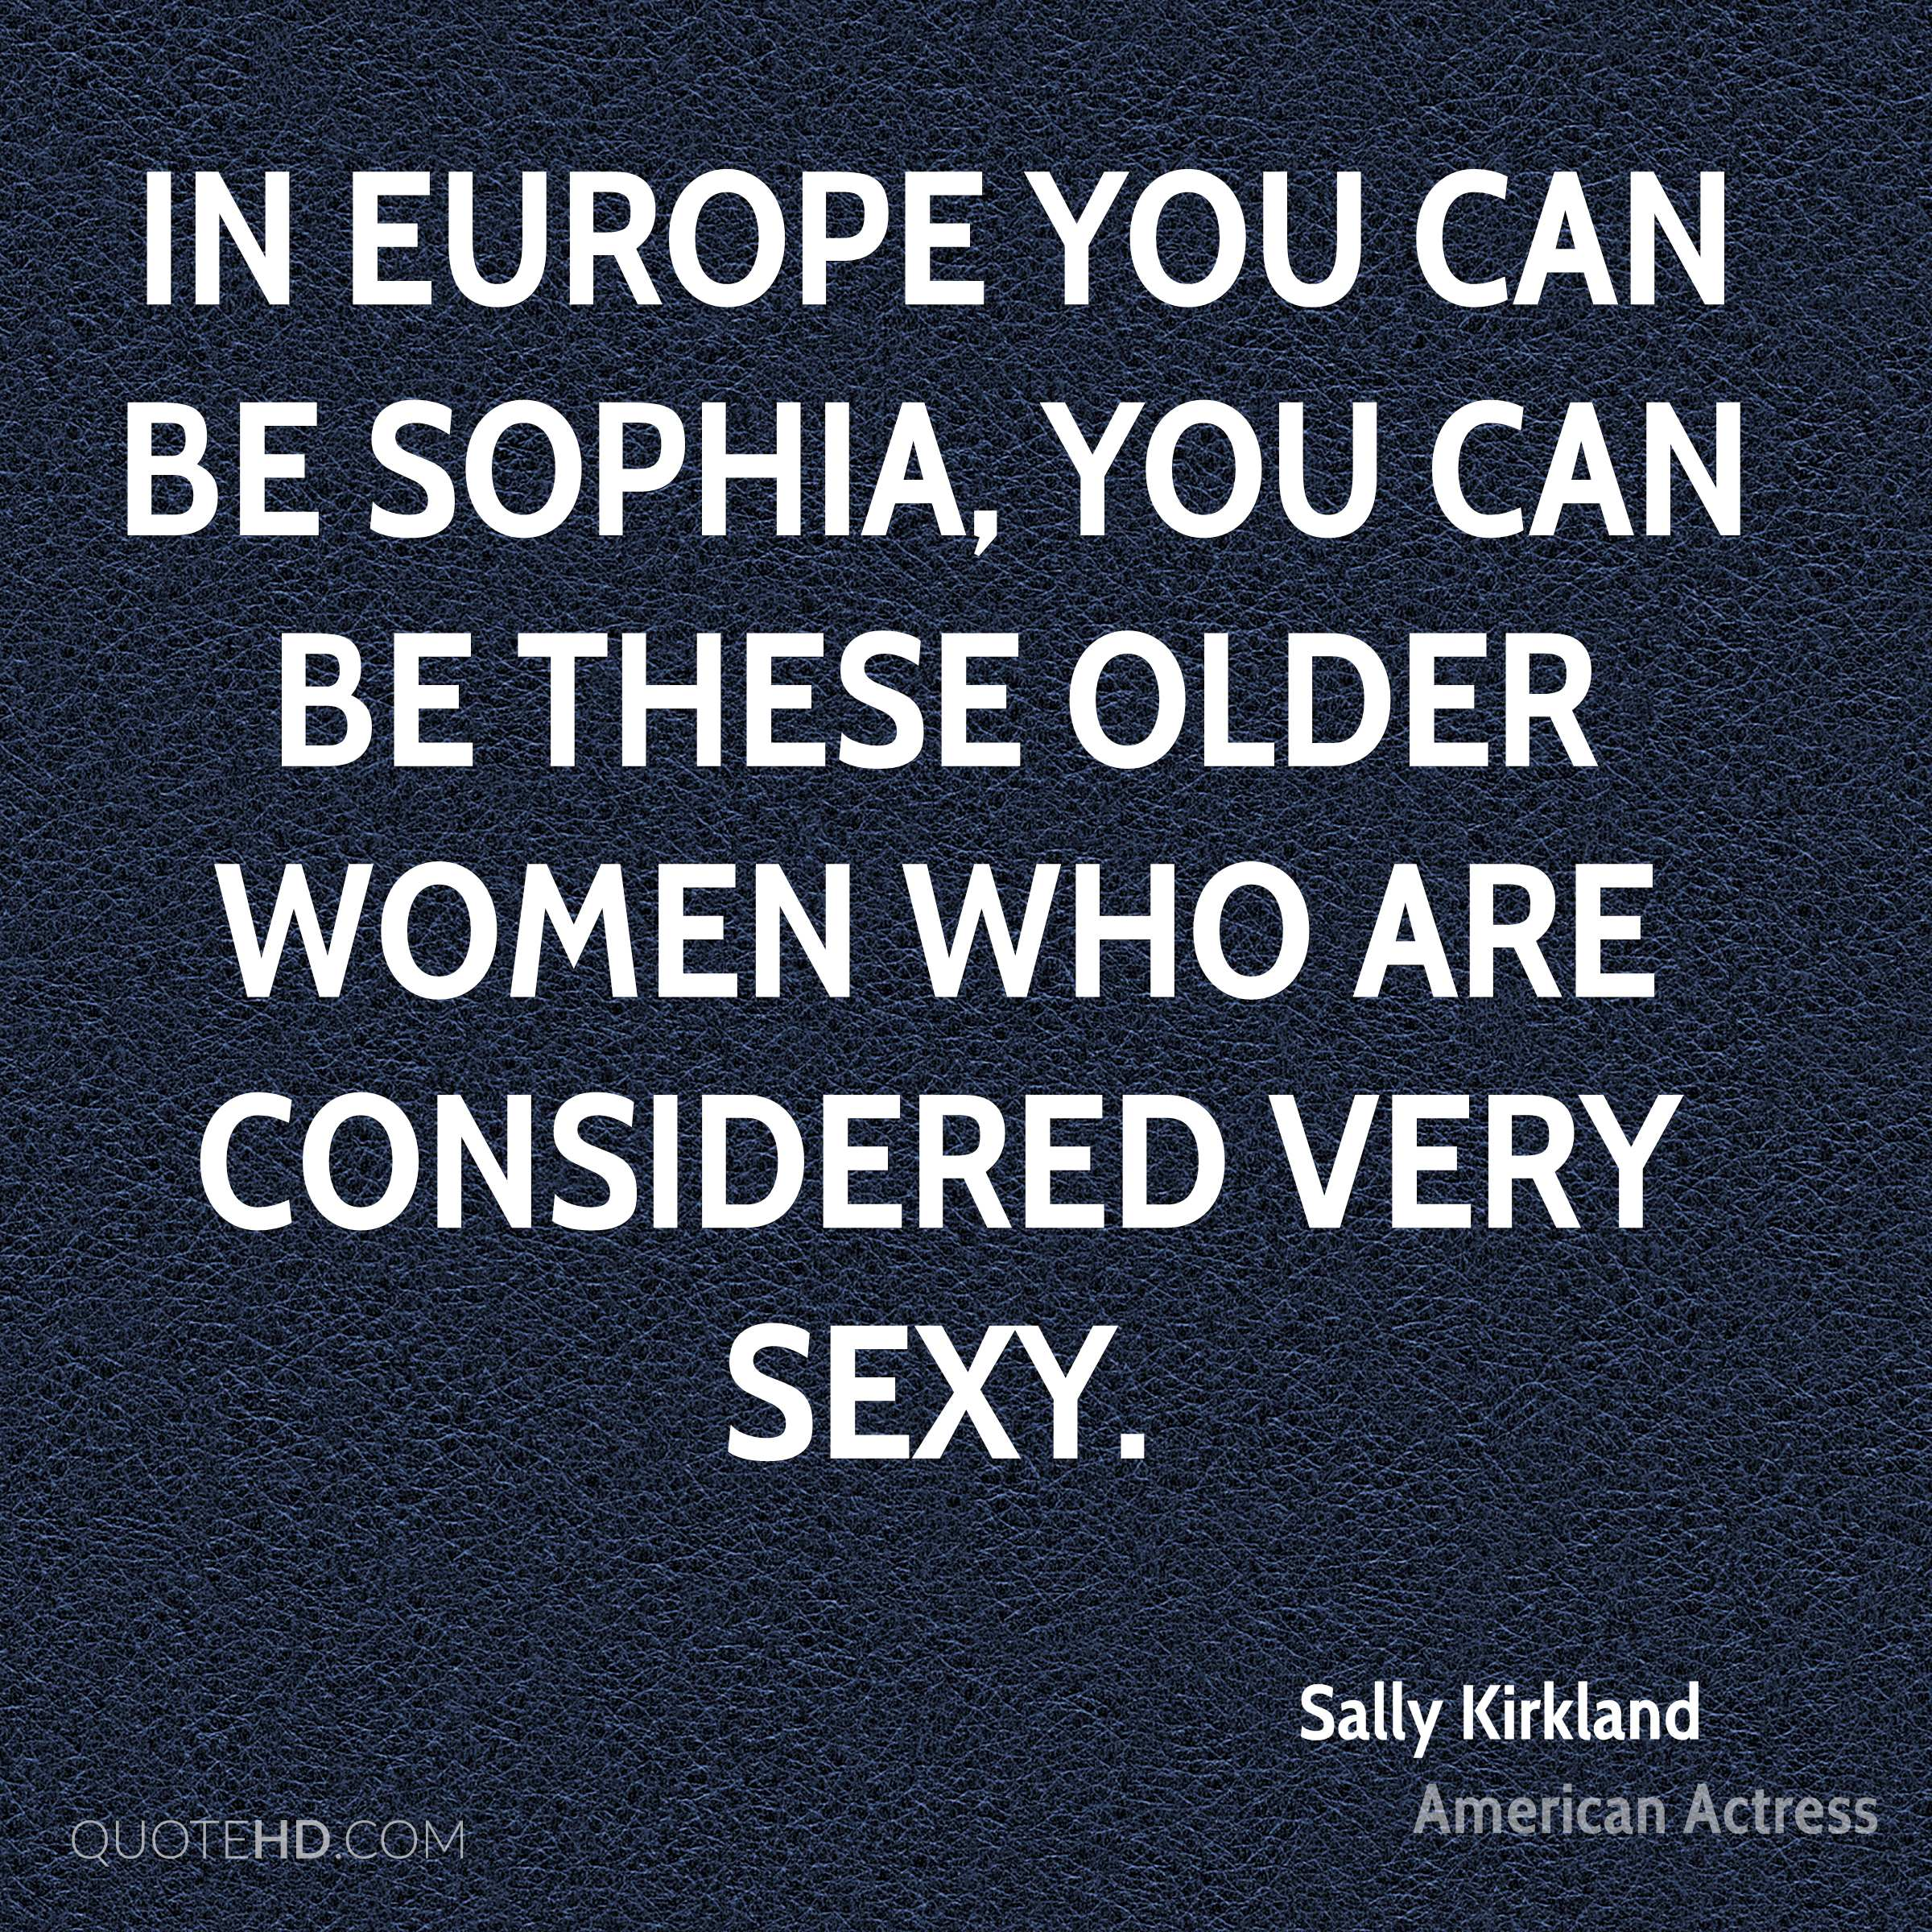 In Europe you can be Sophia, you can be these older women who are considered very sexy.